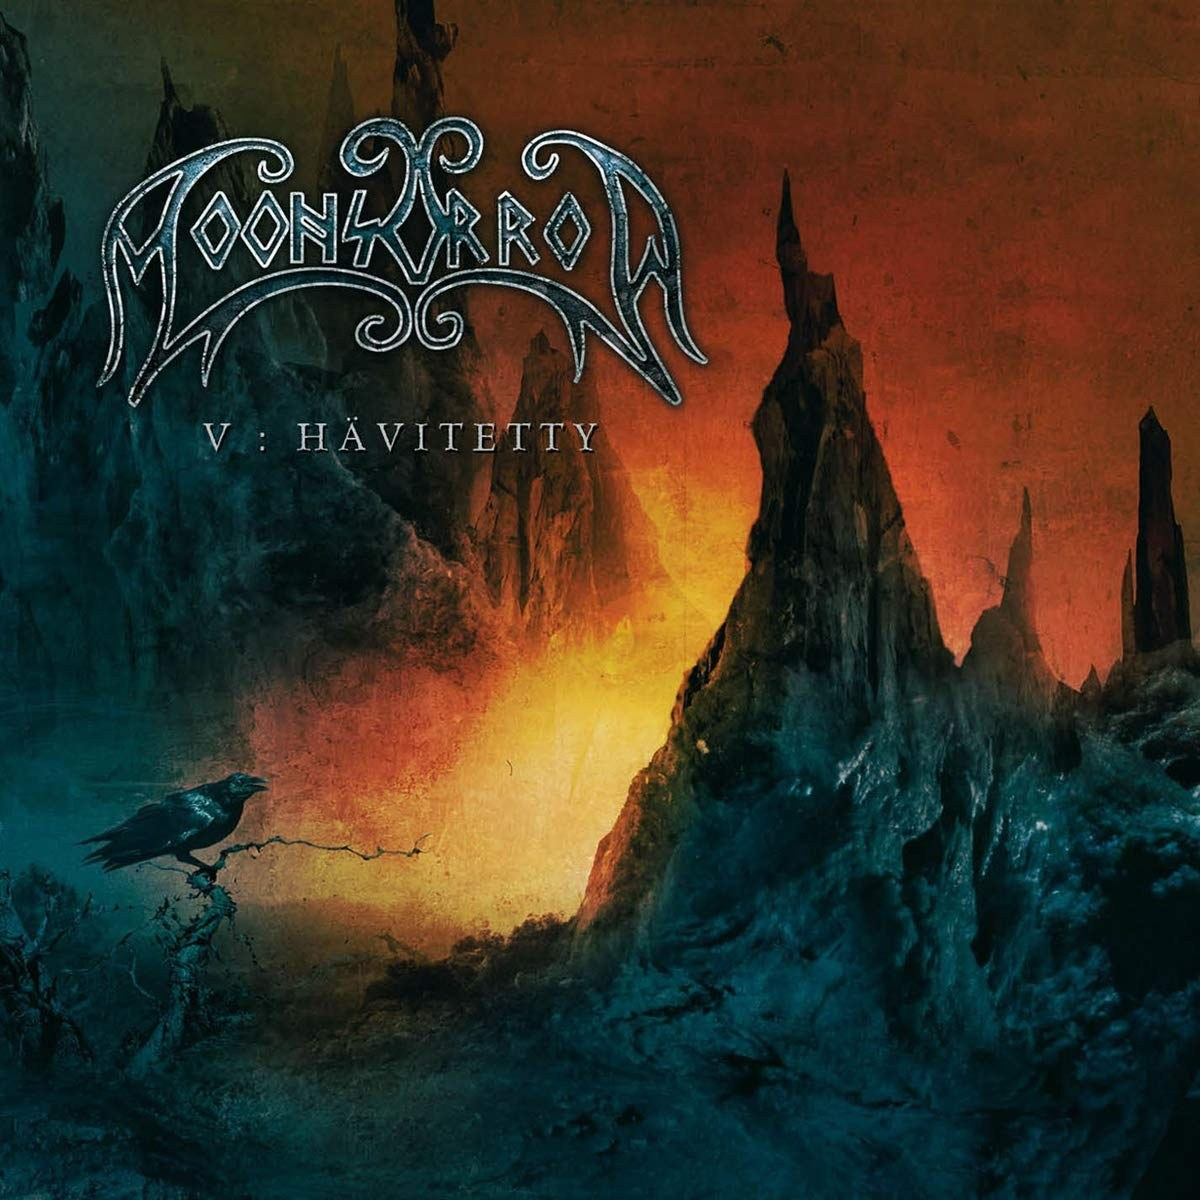 Review for Moonsorrow - V: Hävitetty